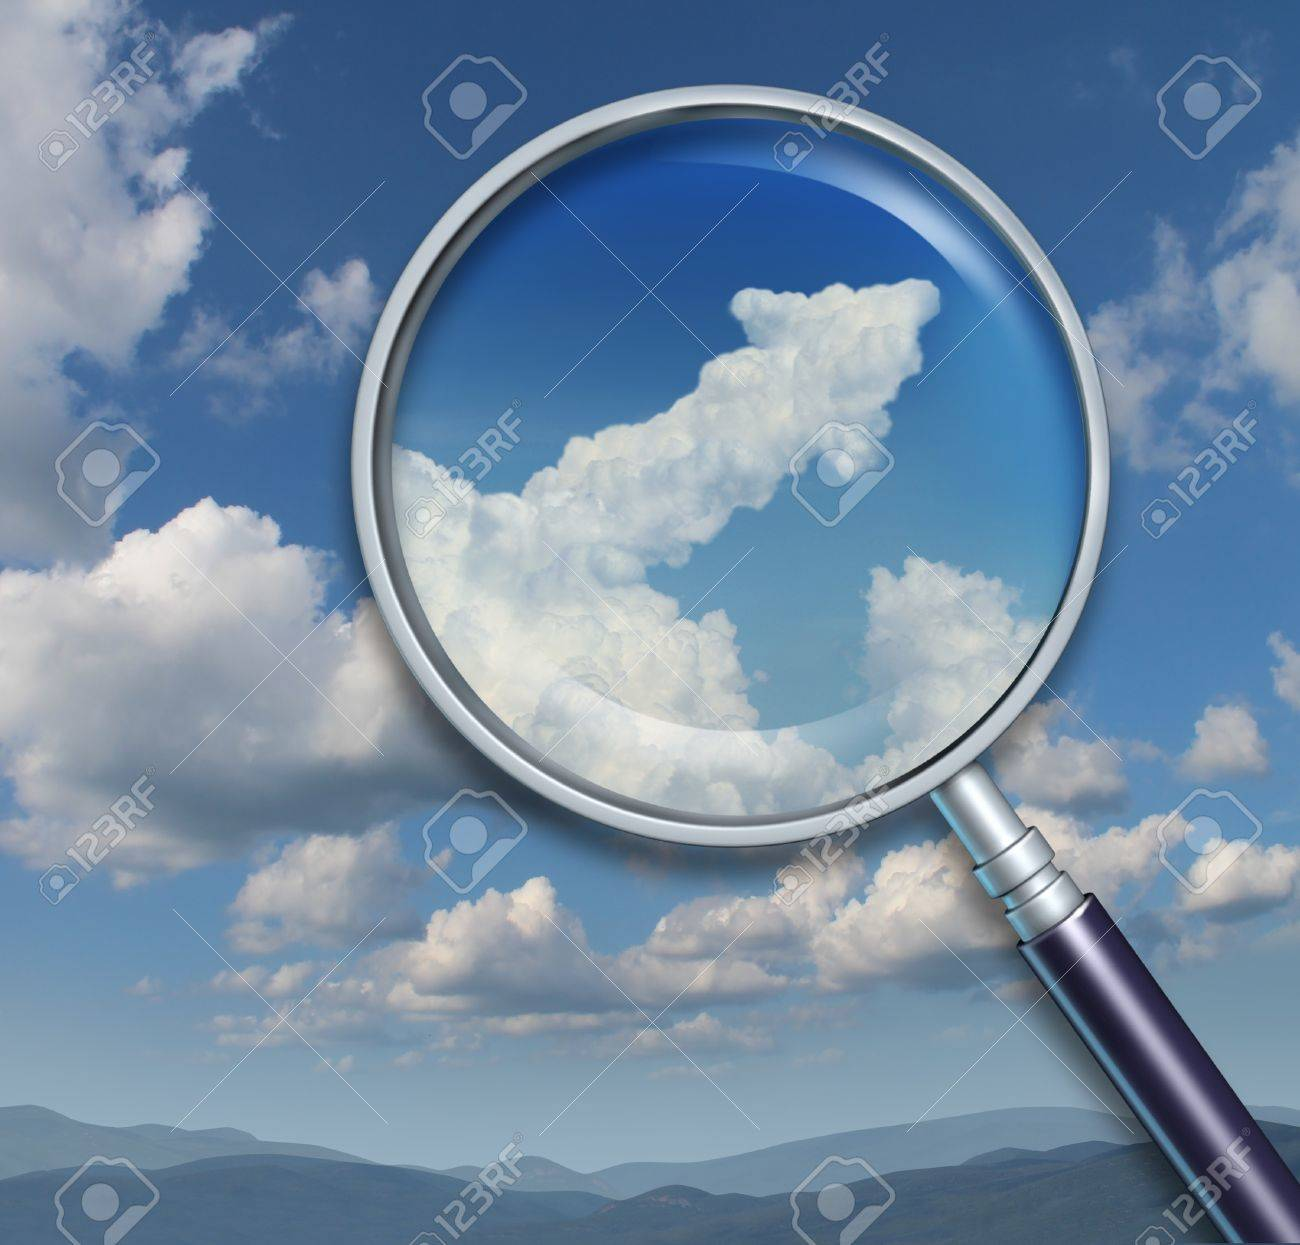 Search for opportunity and discovery of chances for business success with a visionary ability as a magnifying glass on a sky with an upward arrow shaped cloud Stock Photo - 16689646